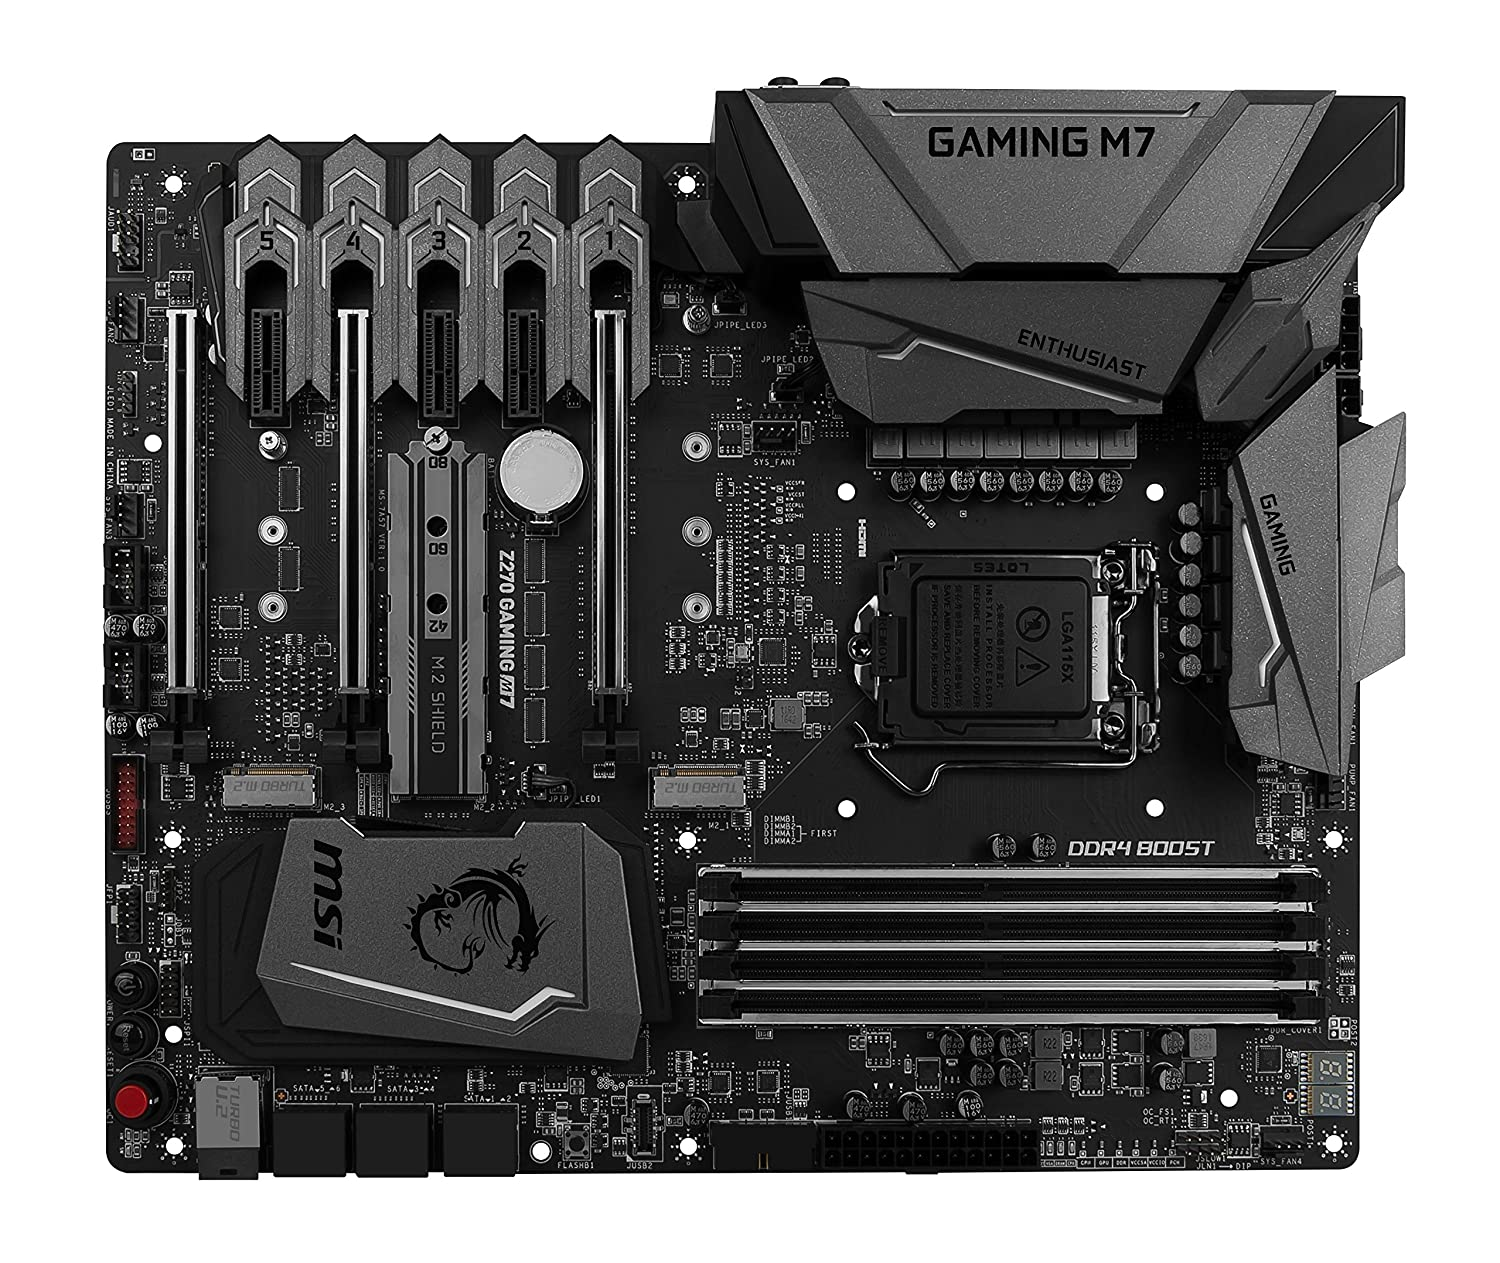 Image result for MSI Enthusiast Z270 Gaming M7 VR Ready Mystic Light RGB ATX Motherboard (Intel Core i3/i5/i7 Processor, LGA 1151, Dual Channel DDR4, USB 3.1, PCI-E 3.0, PCI-E x1, Sata 6 GB)